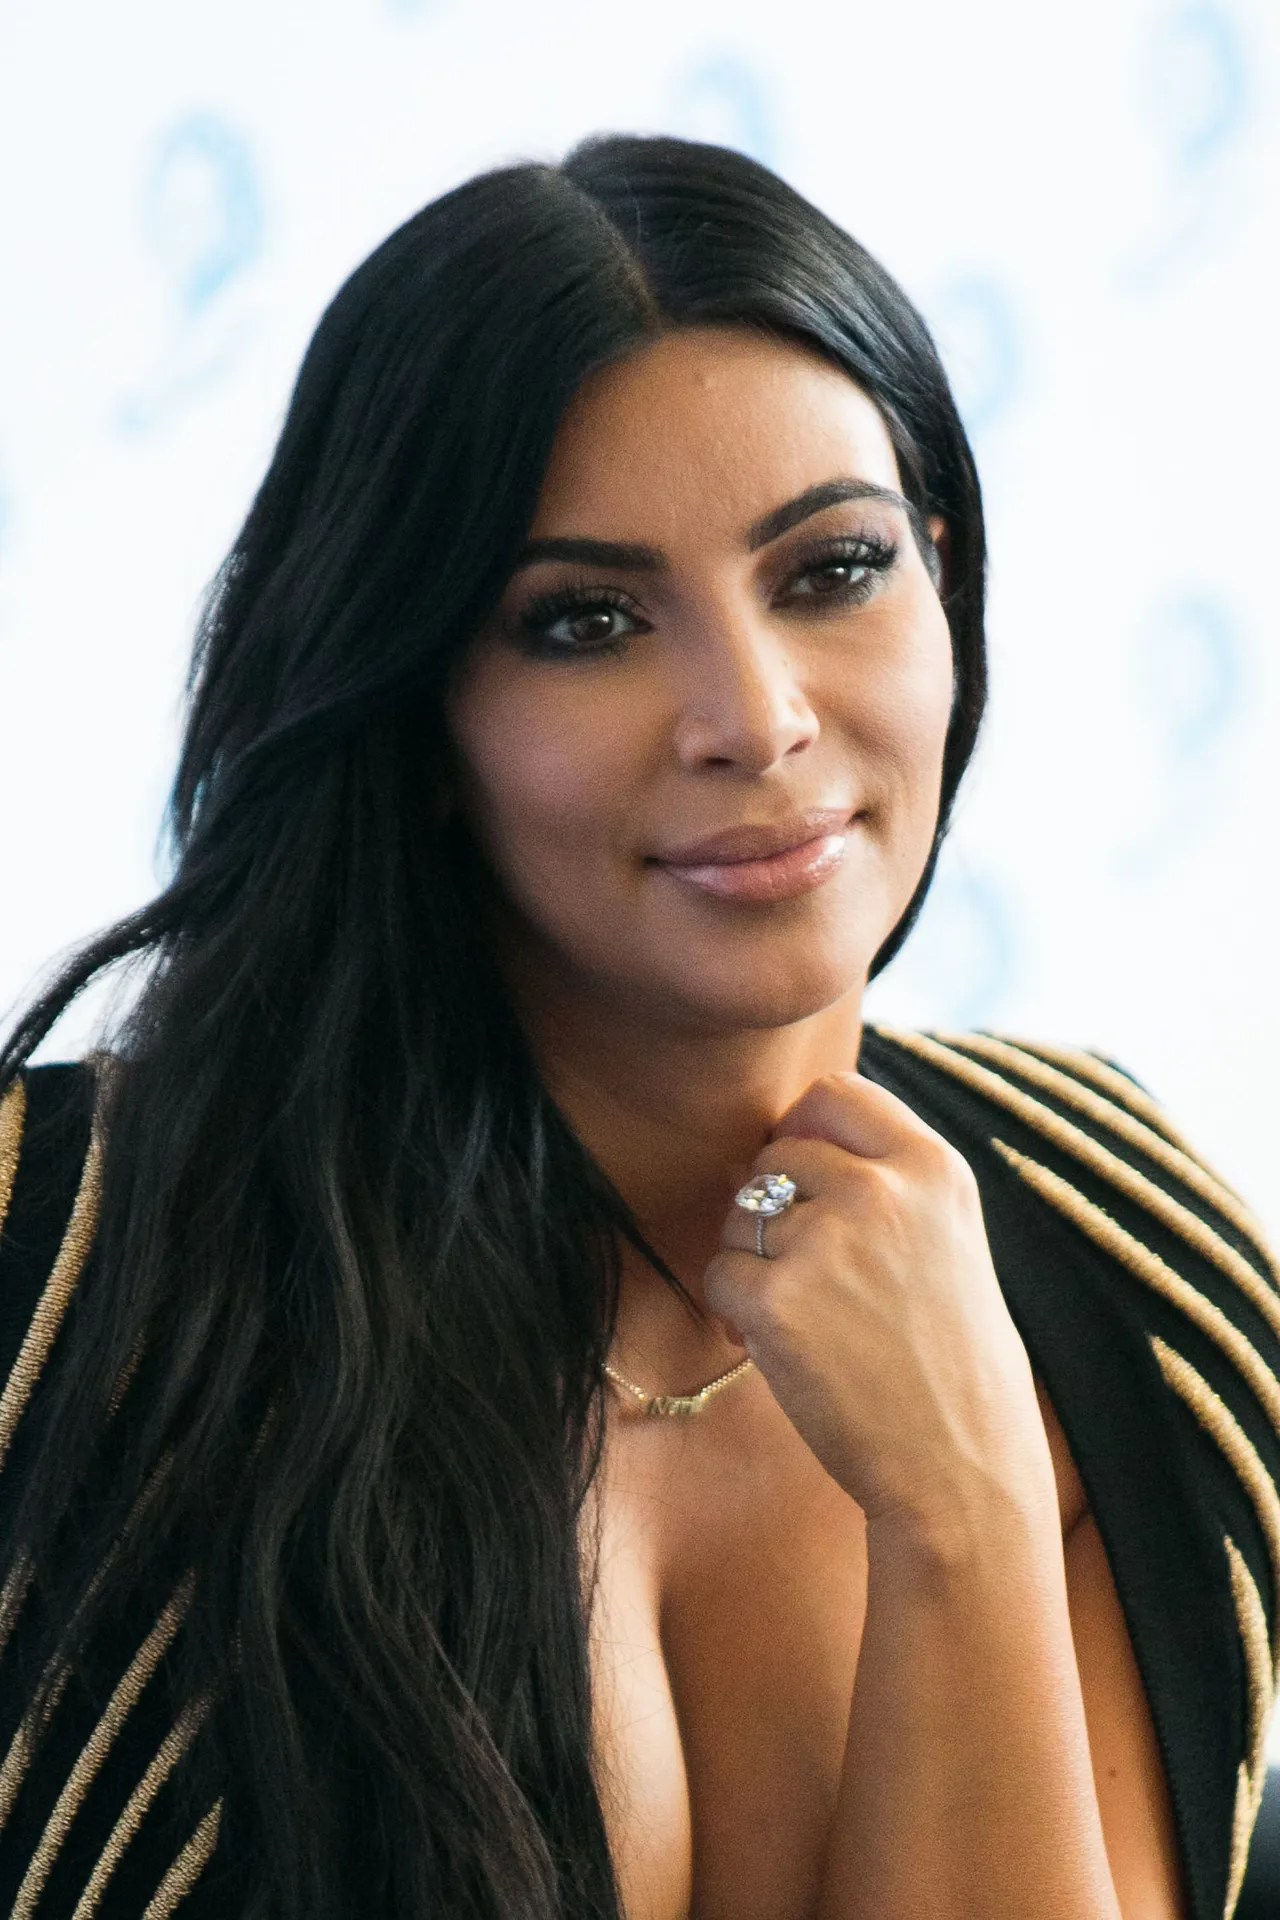 Magnificent Kim Kardashian Engagement Ring Kanye West Getty Kim Engagement Jeweler Who Made It Shares Kim Kardashian Ring Replica Kim Kardashian Ring Cost wedding rings Kim Kardashian Ring